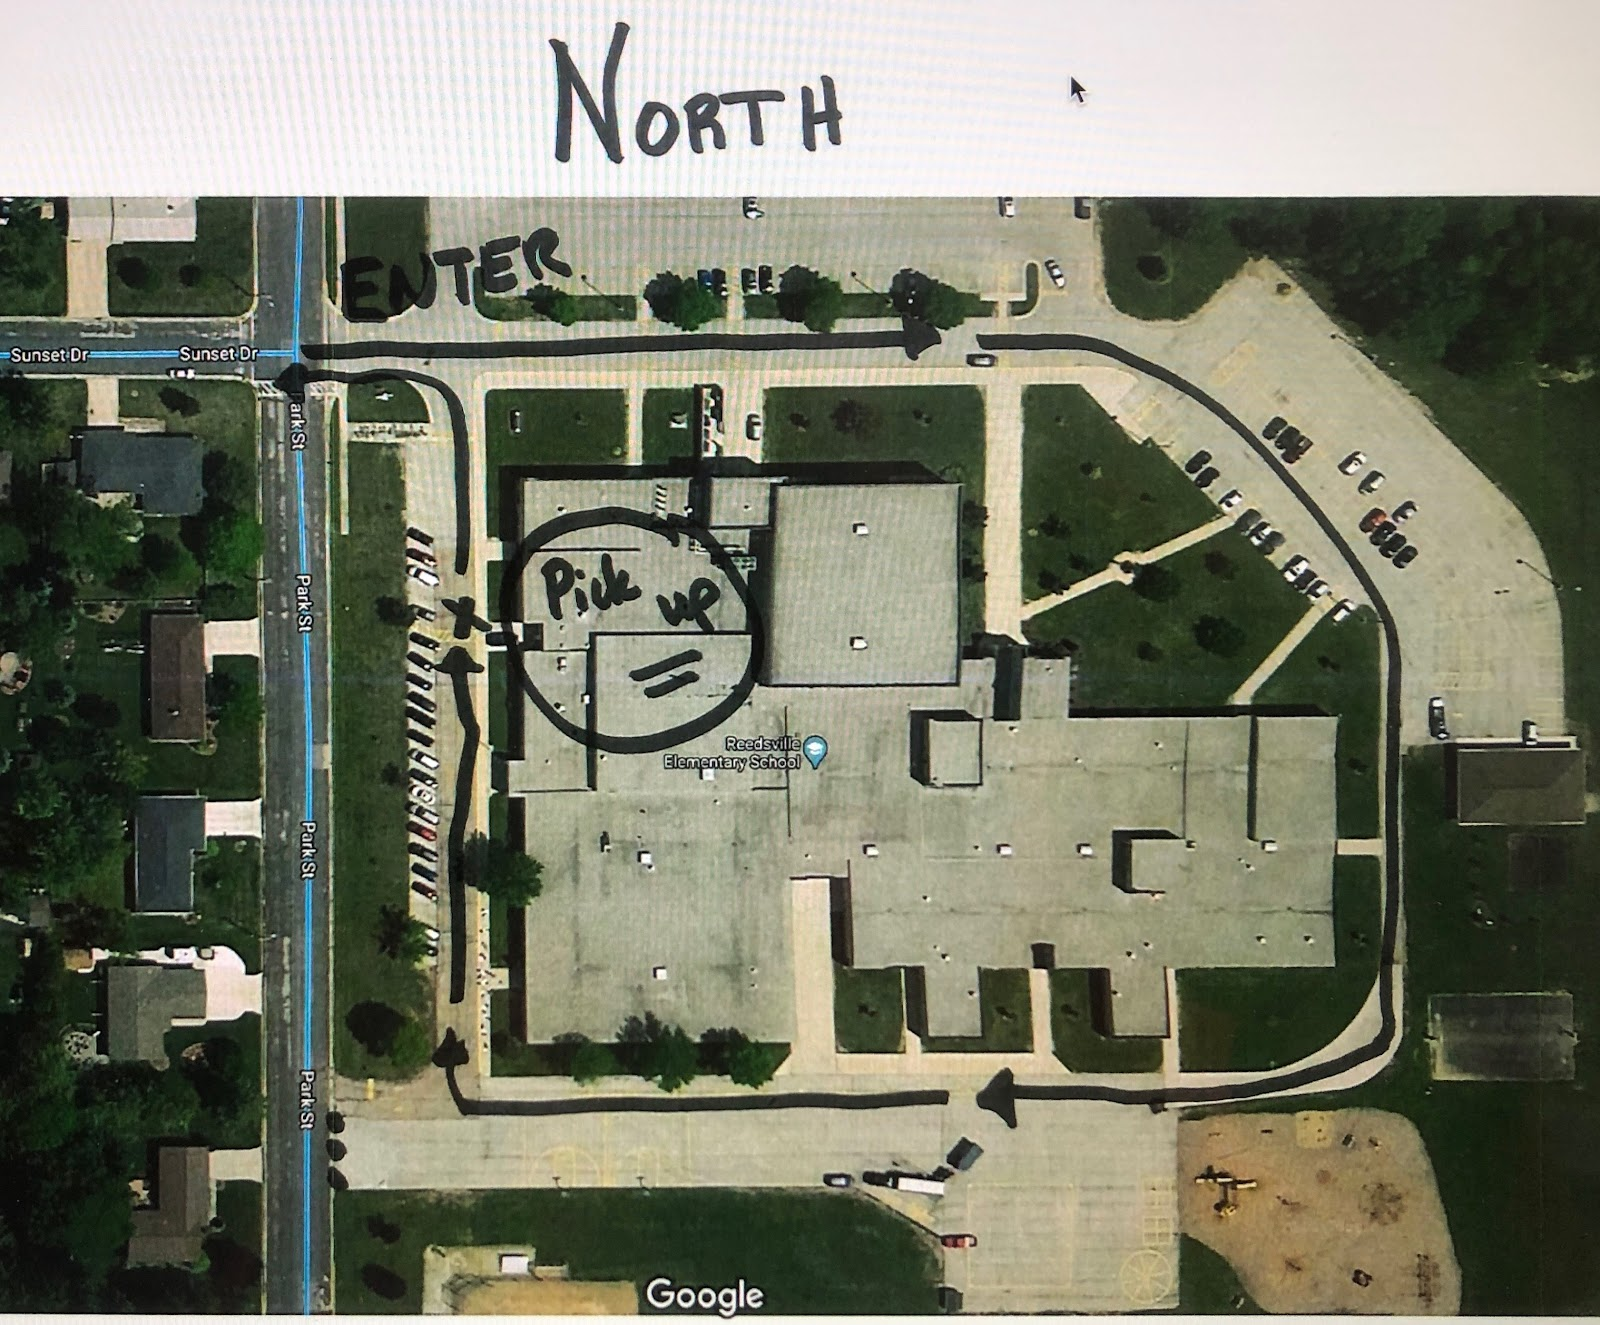 aerial view of Elementary Middle School with driving directions for pick up